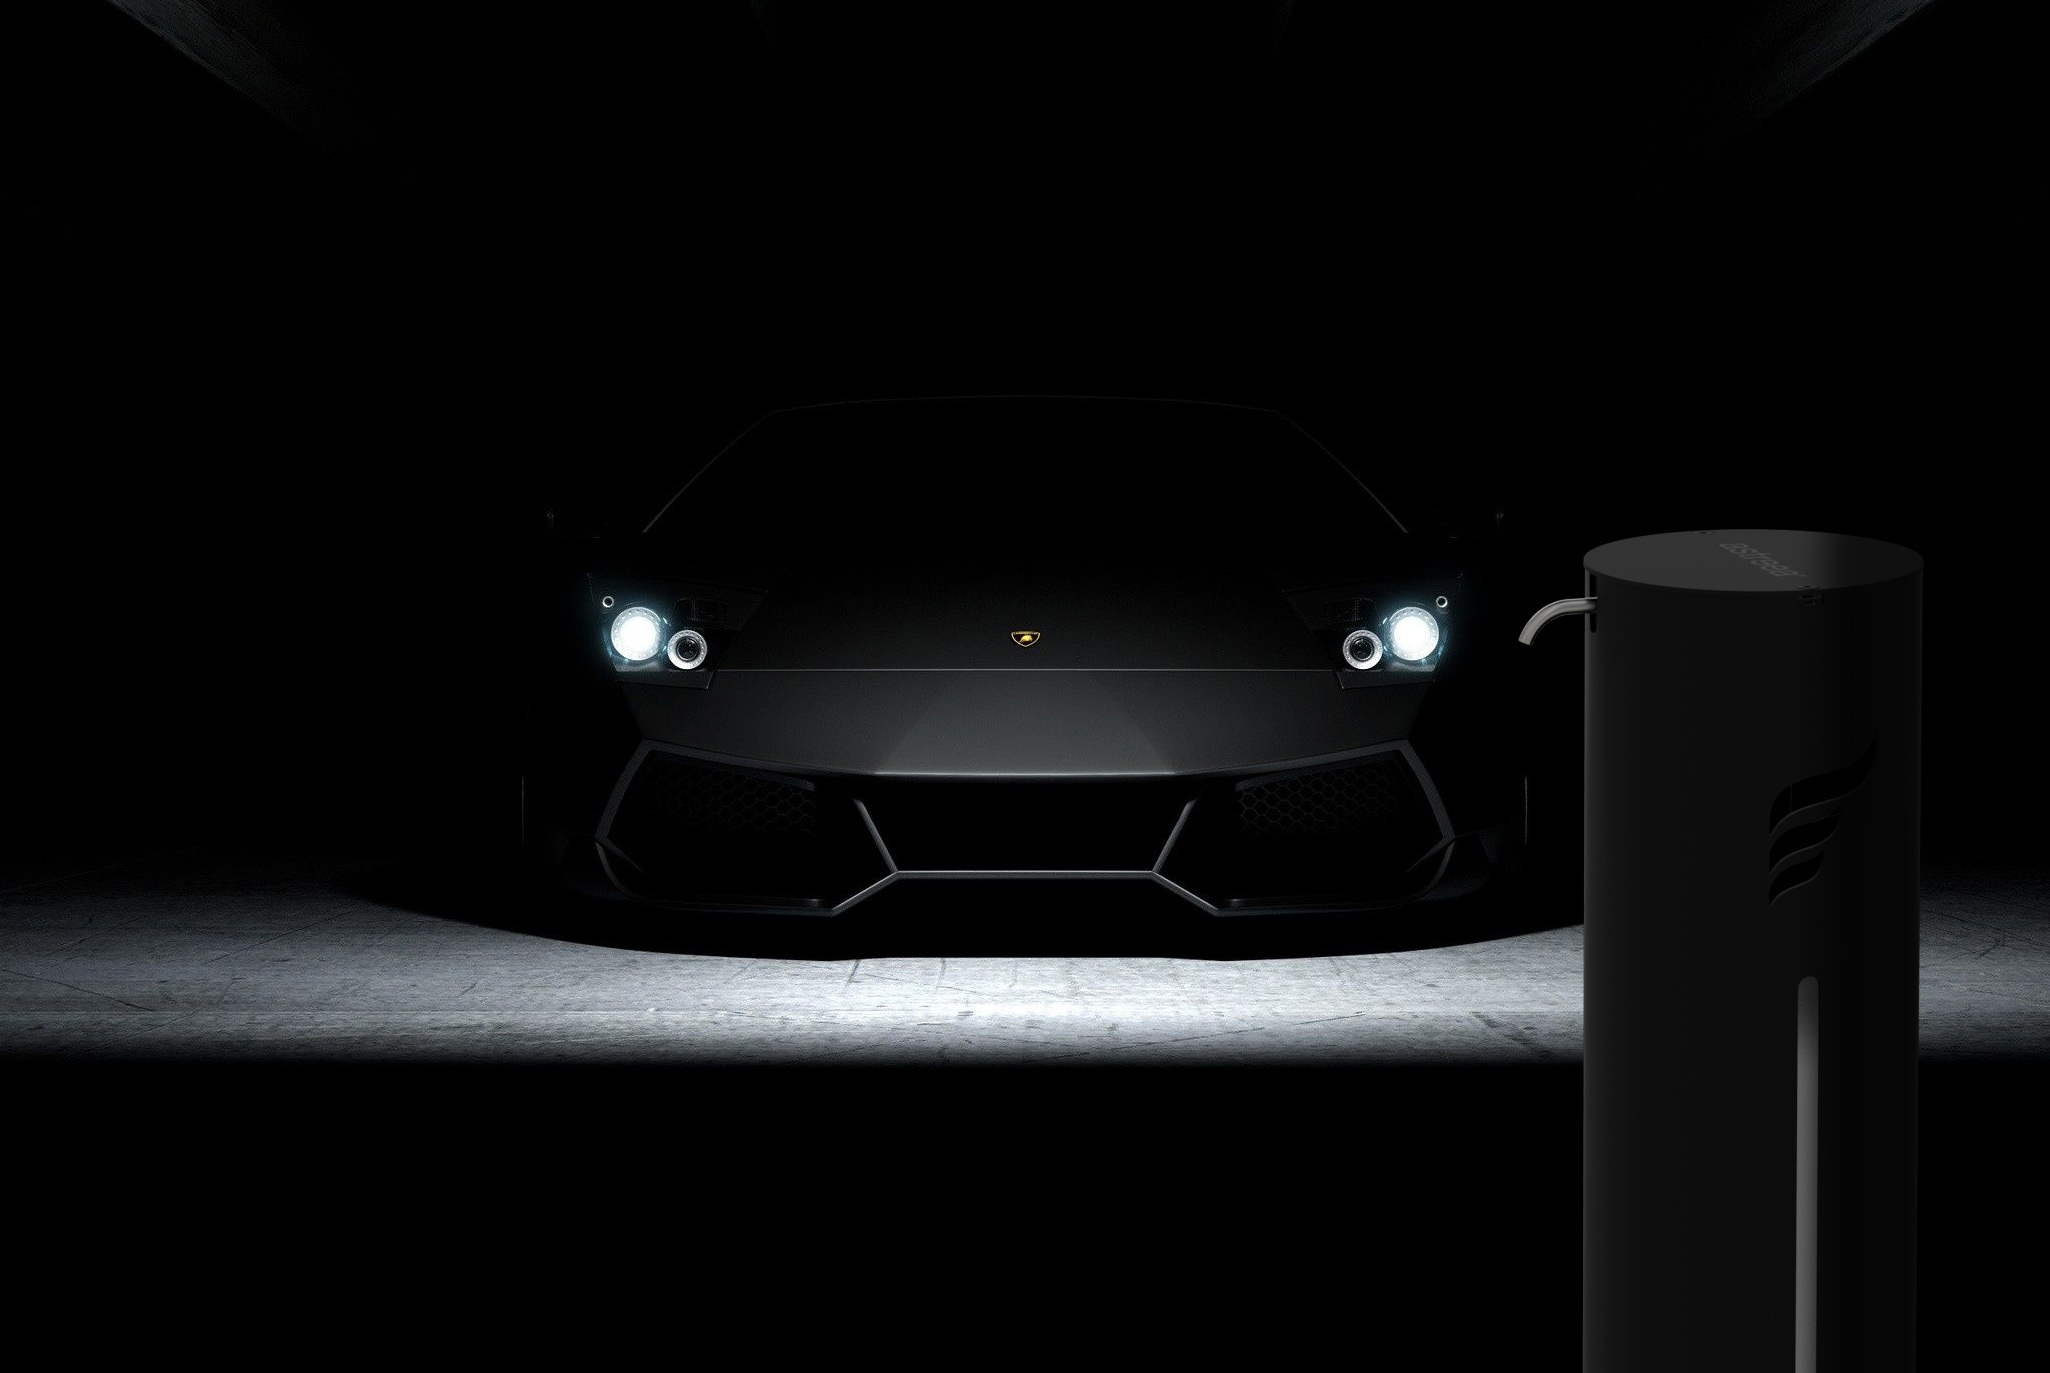 Safety first, beauty after. First Lamborghini dealer got Astreea to safeguard their facility.